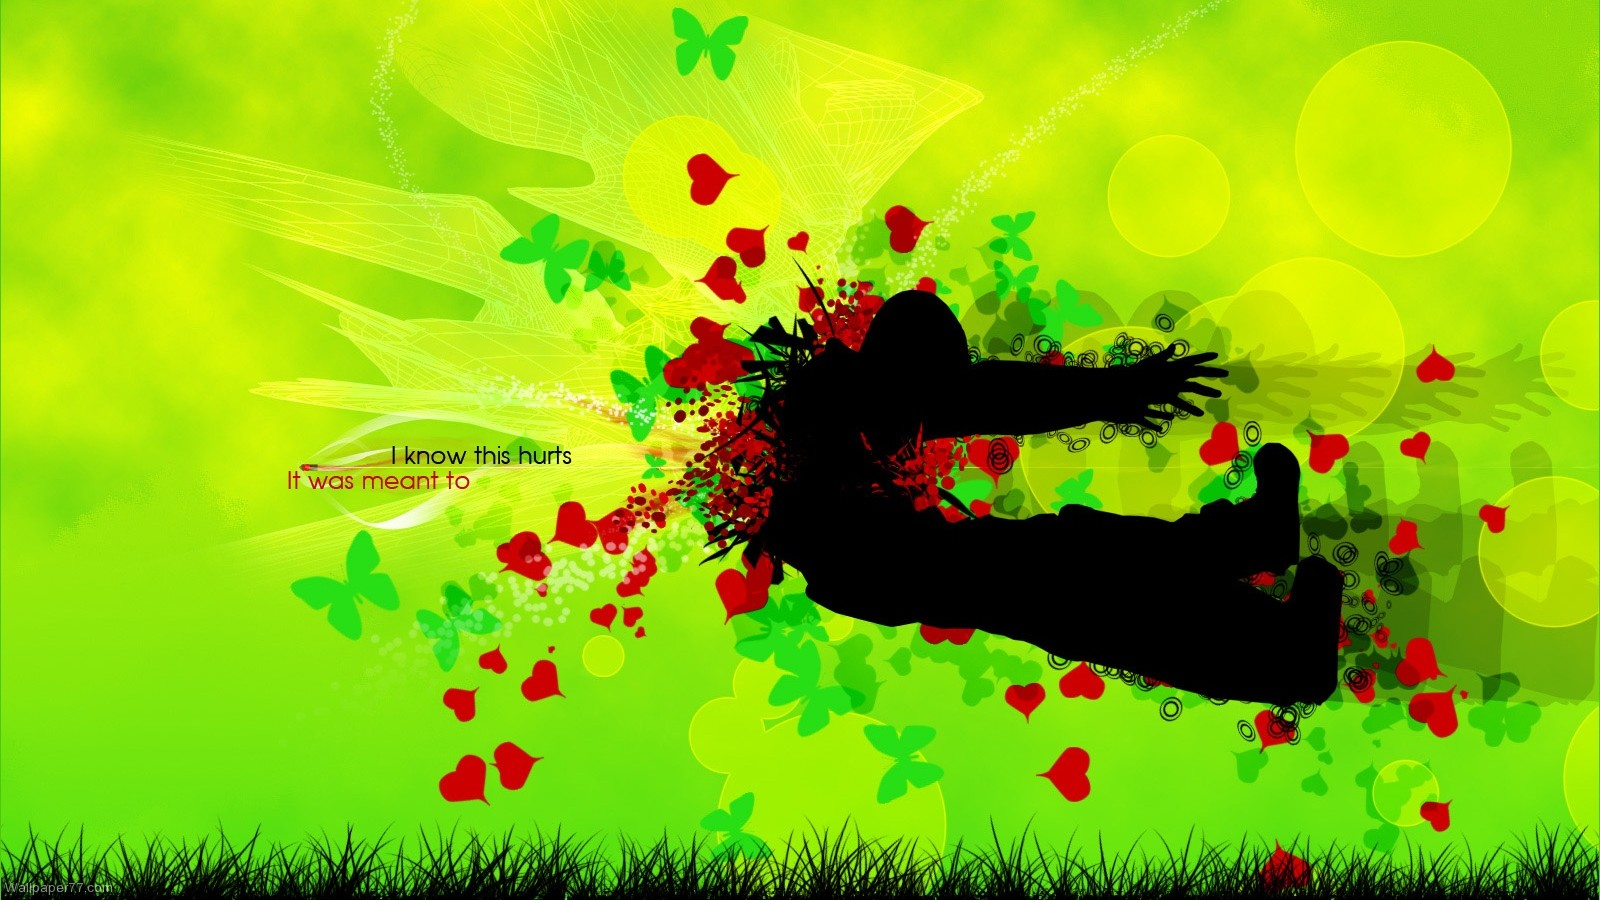 love wallpapers heart wallpapers valentine wallpapers 1600x900jpg 1600x900